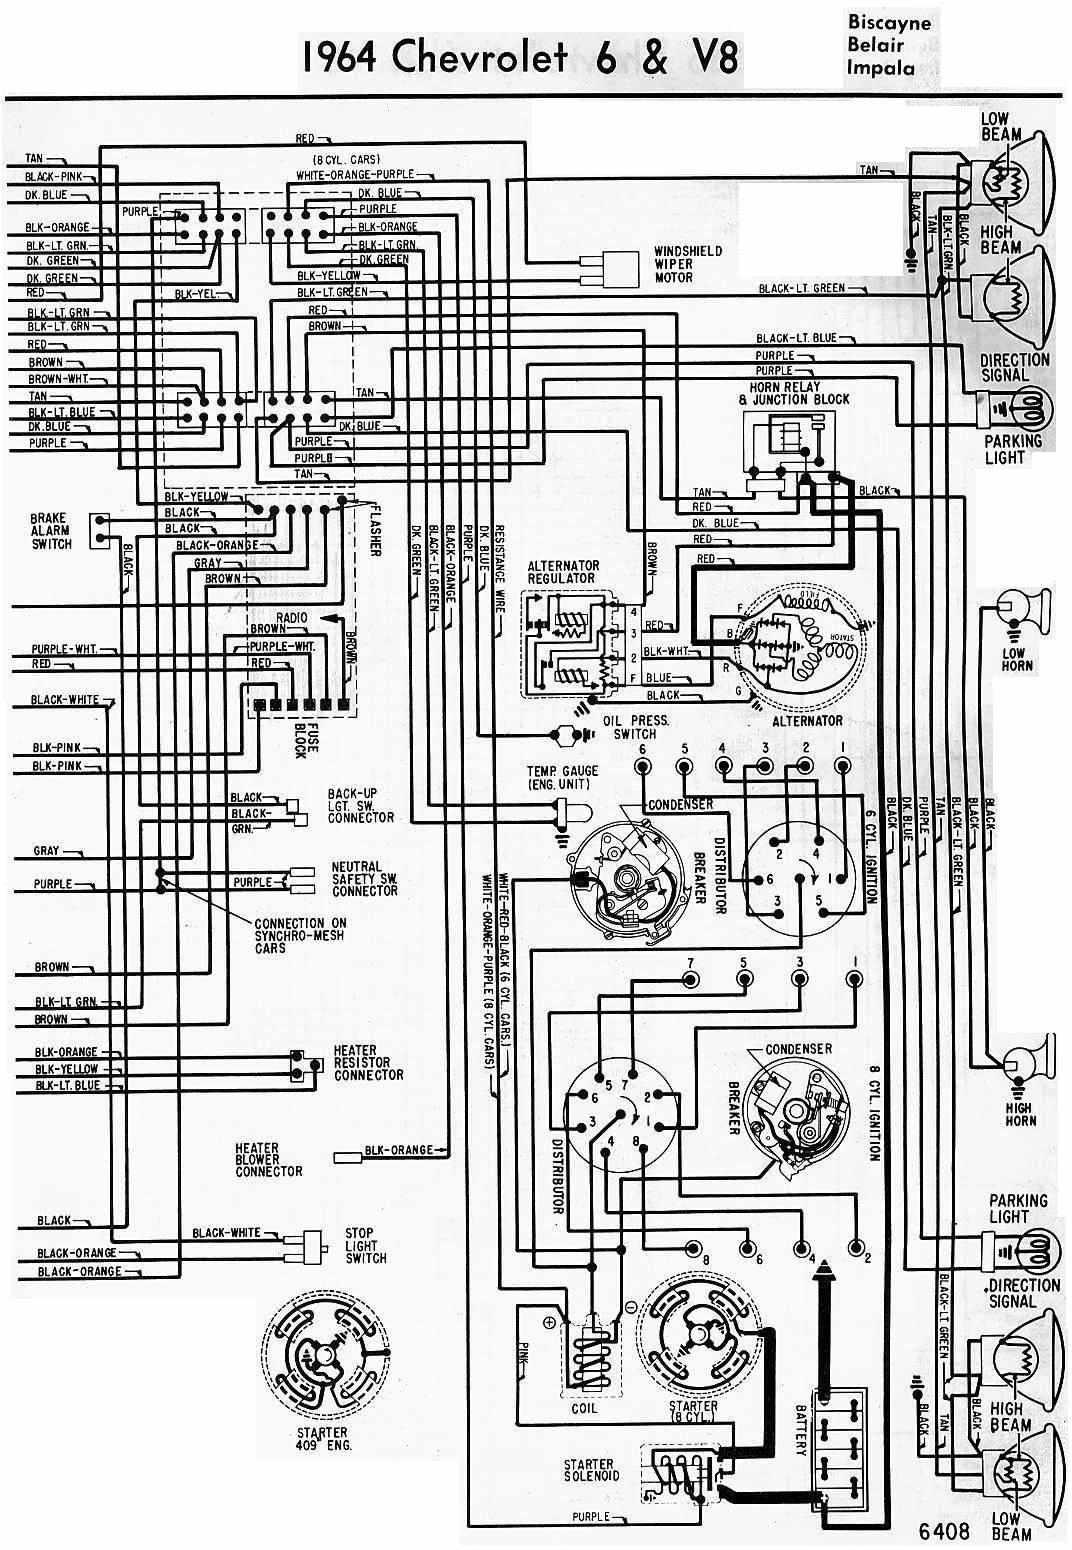 Electrical+Wiring+Diagram+Of+1964+Chevrolet+6+And+V8 1964 bel air wire diagram colors incorrect chevytalk free 1964 corvair wiring diagram at love-stories.co